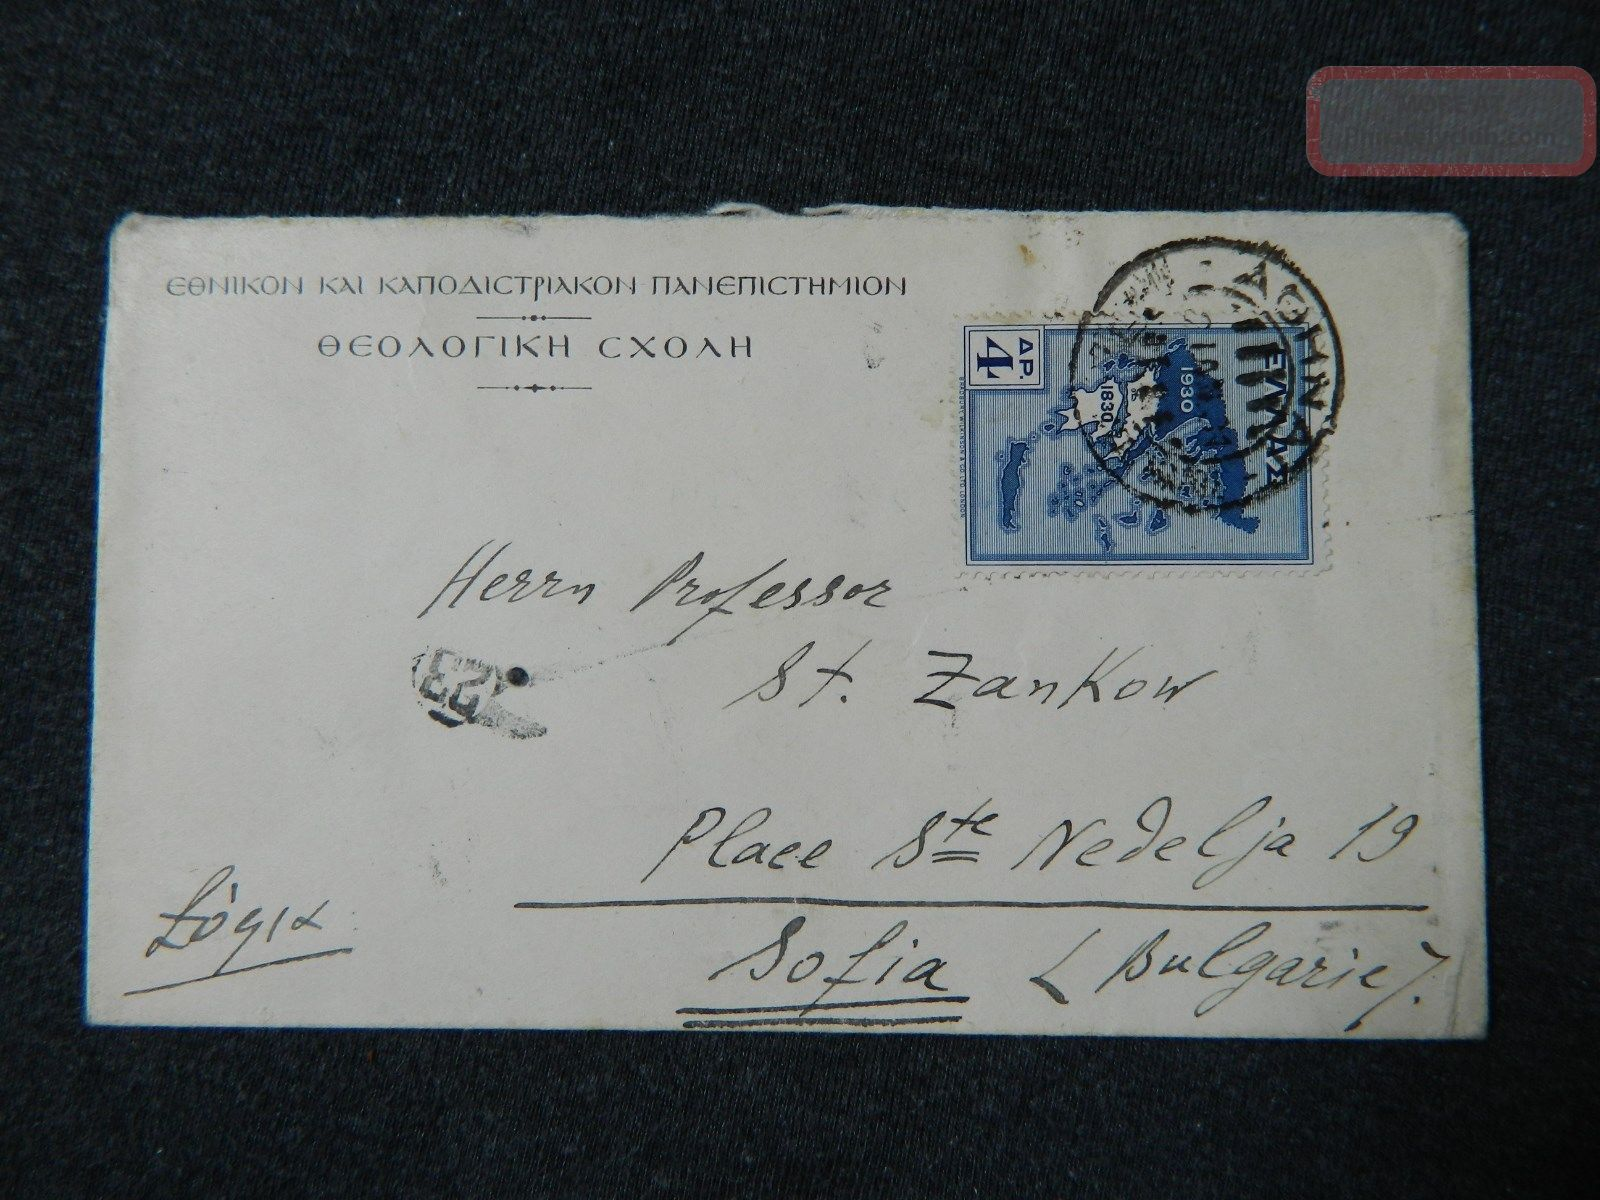 Greece Griechenland To Bulgaria Airmail Cover 1930 Worldwide photo